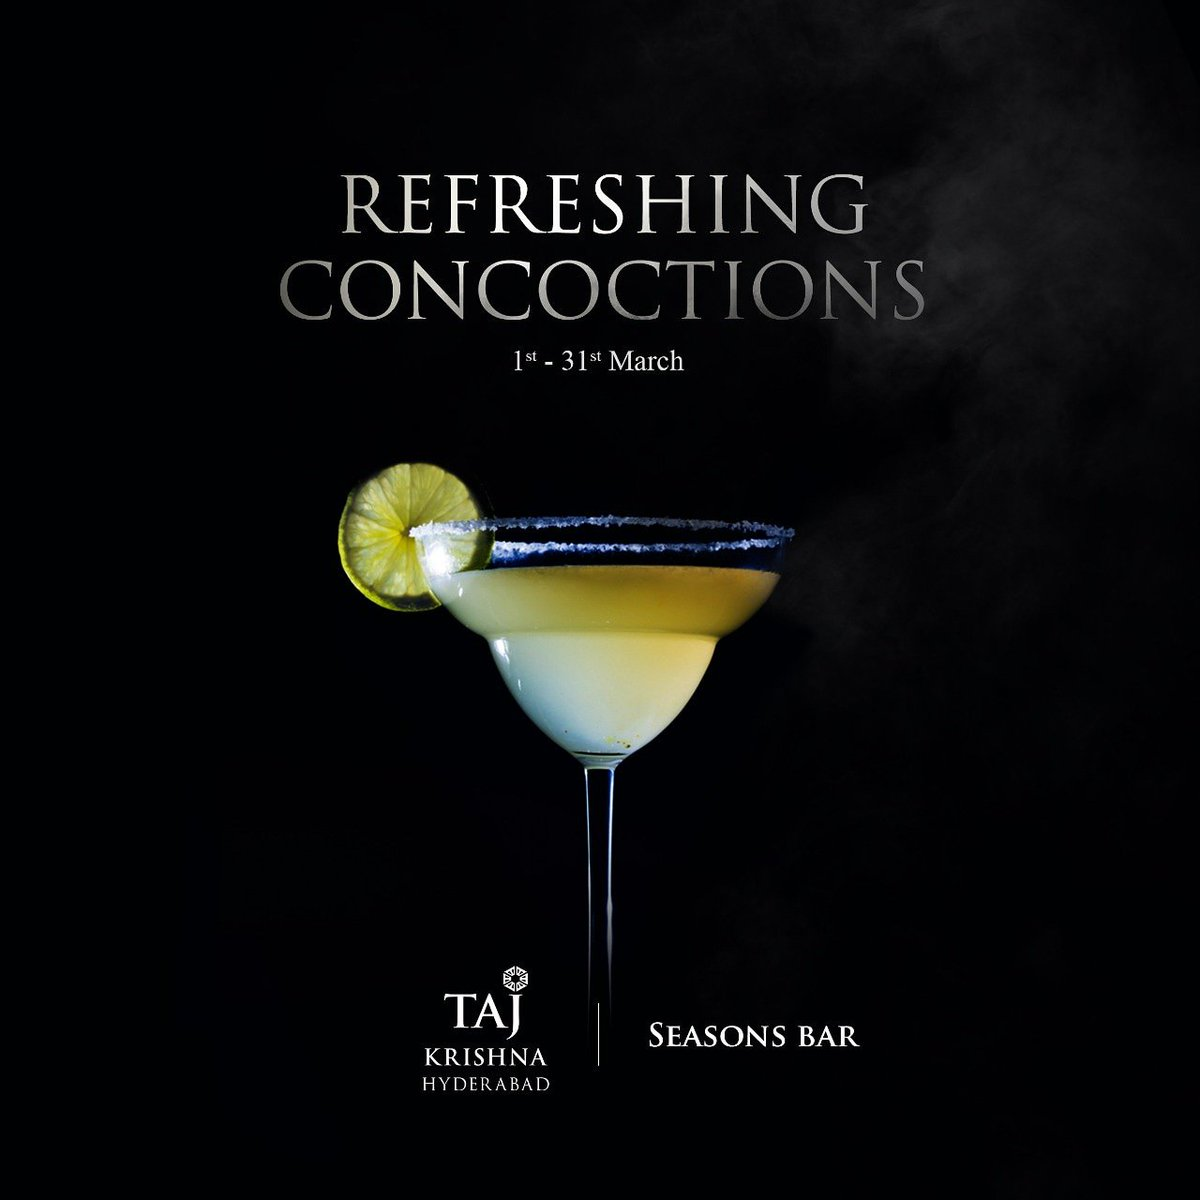 Refreshing Concoctions!  Treat yourself to plumpy infusions of Margaritas and Daiguiris at Seasons Bar. With whimsical aromas underscored by refreshing flavours, the cocktail menu is a blissful indulgence.  1st - 31st March Reservations: 040 6666 2323/ 6629 3328  #tajkrishna